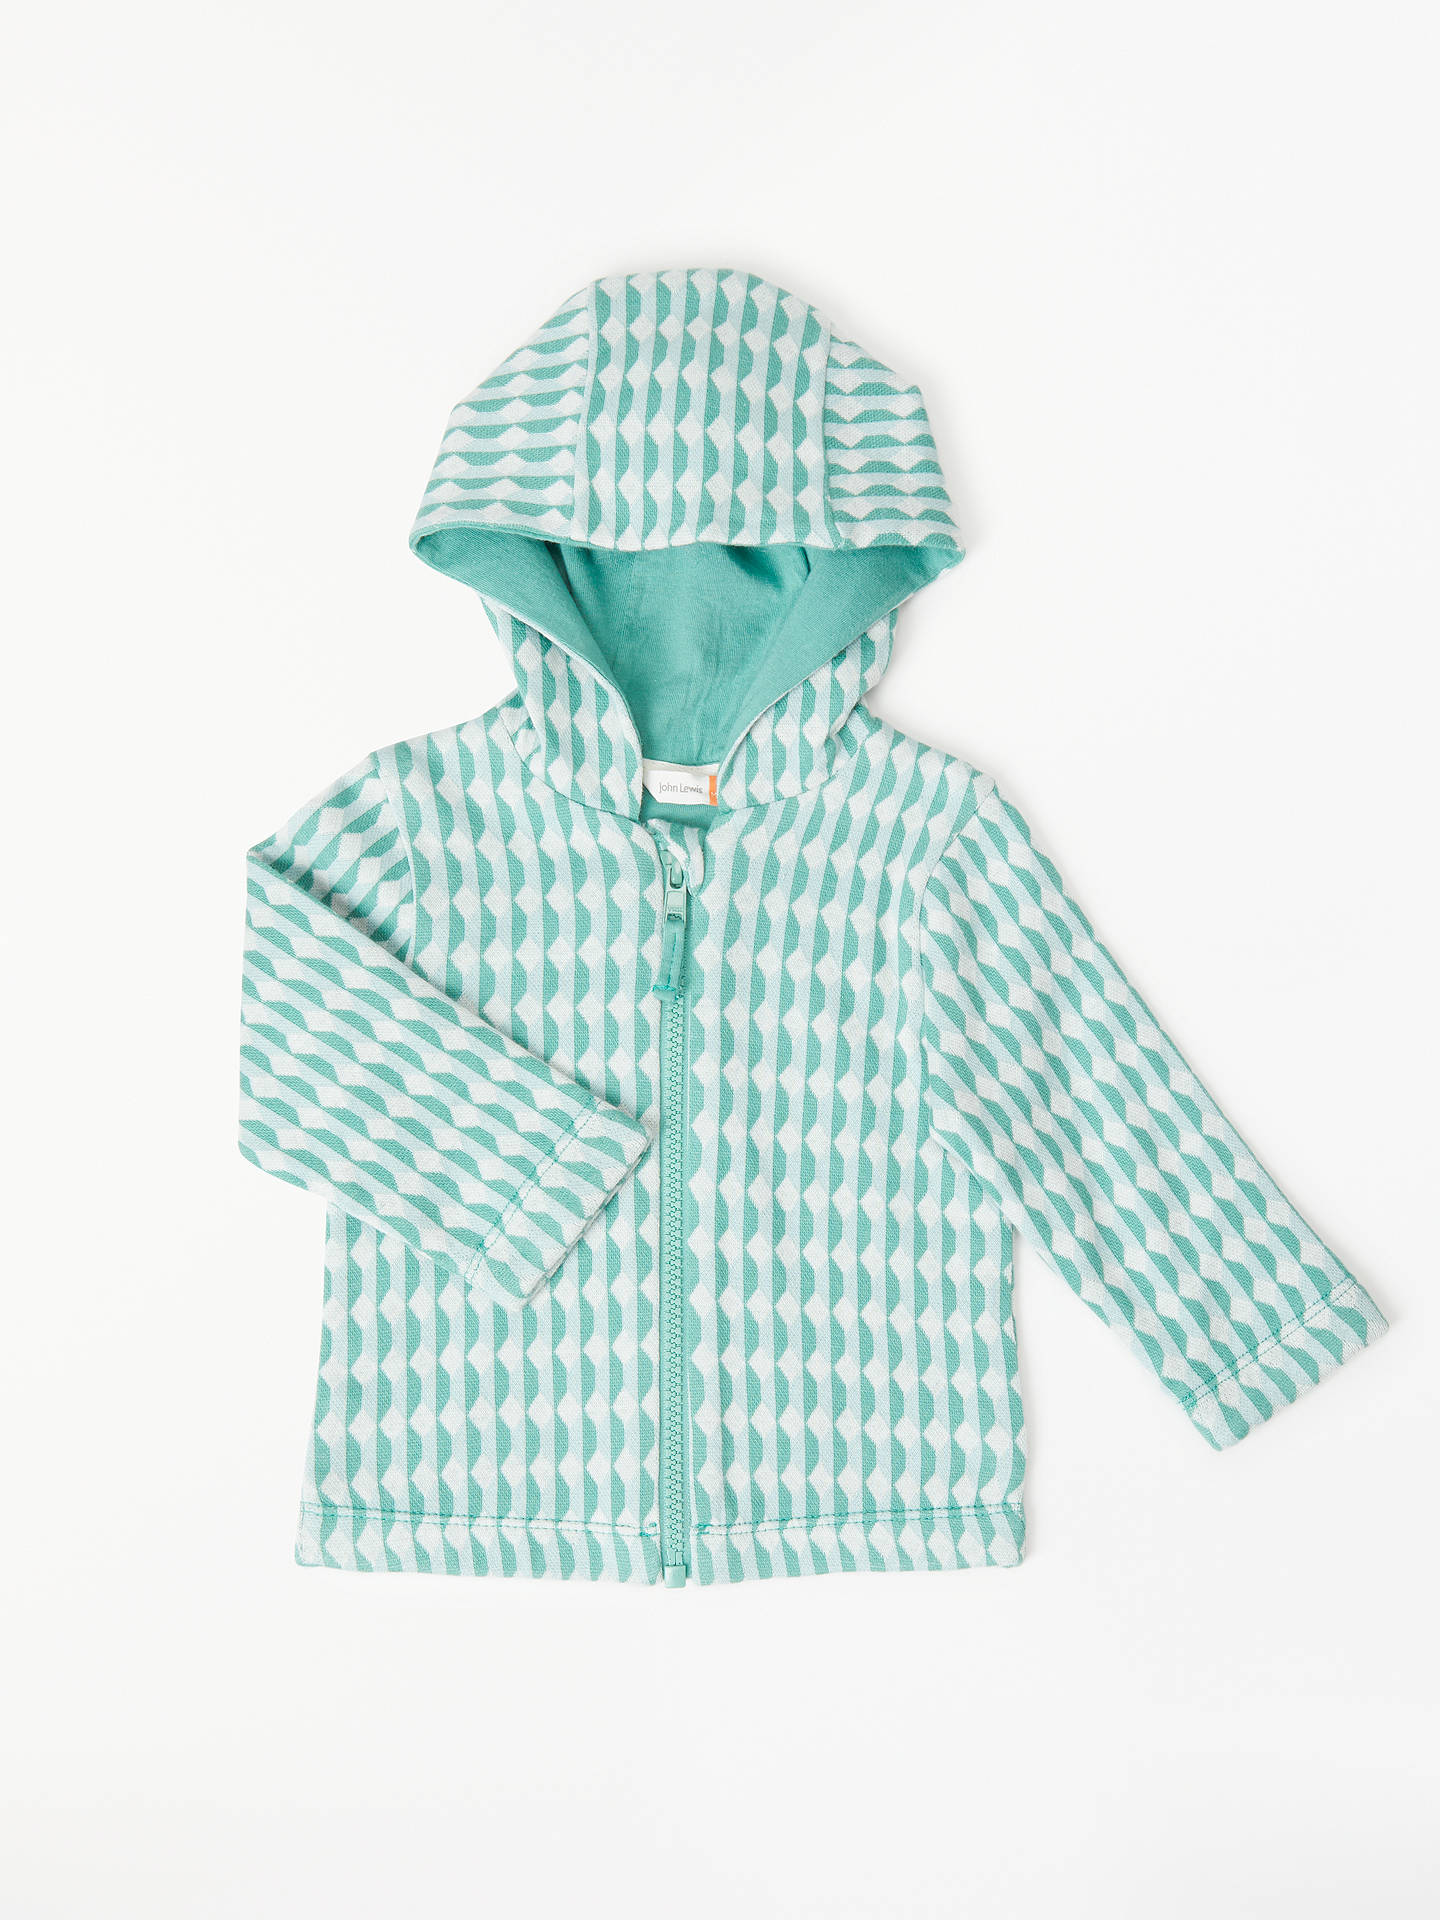 Buy John Lewis Baby Organic Cotton Jacquard Bomber Jacket, Multi, 12-18 months Online at johnlewis.com